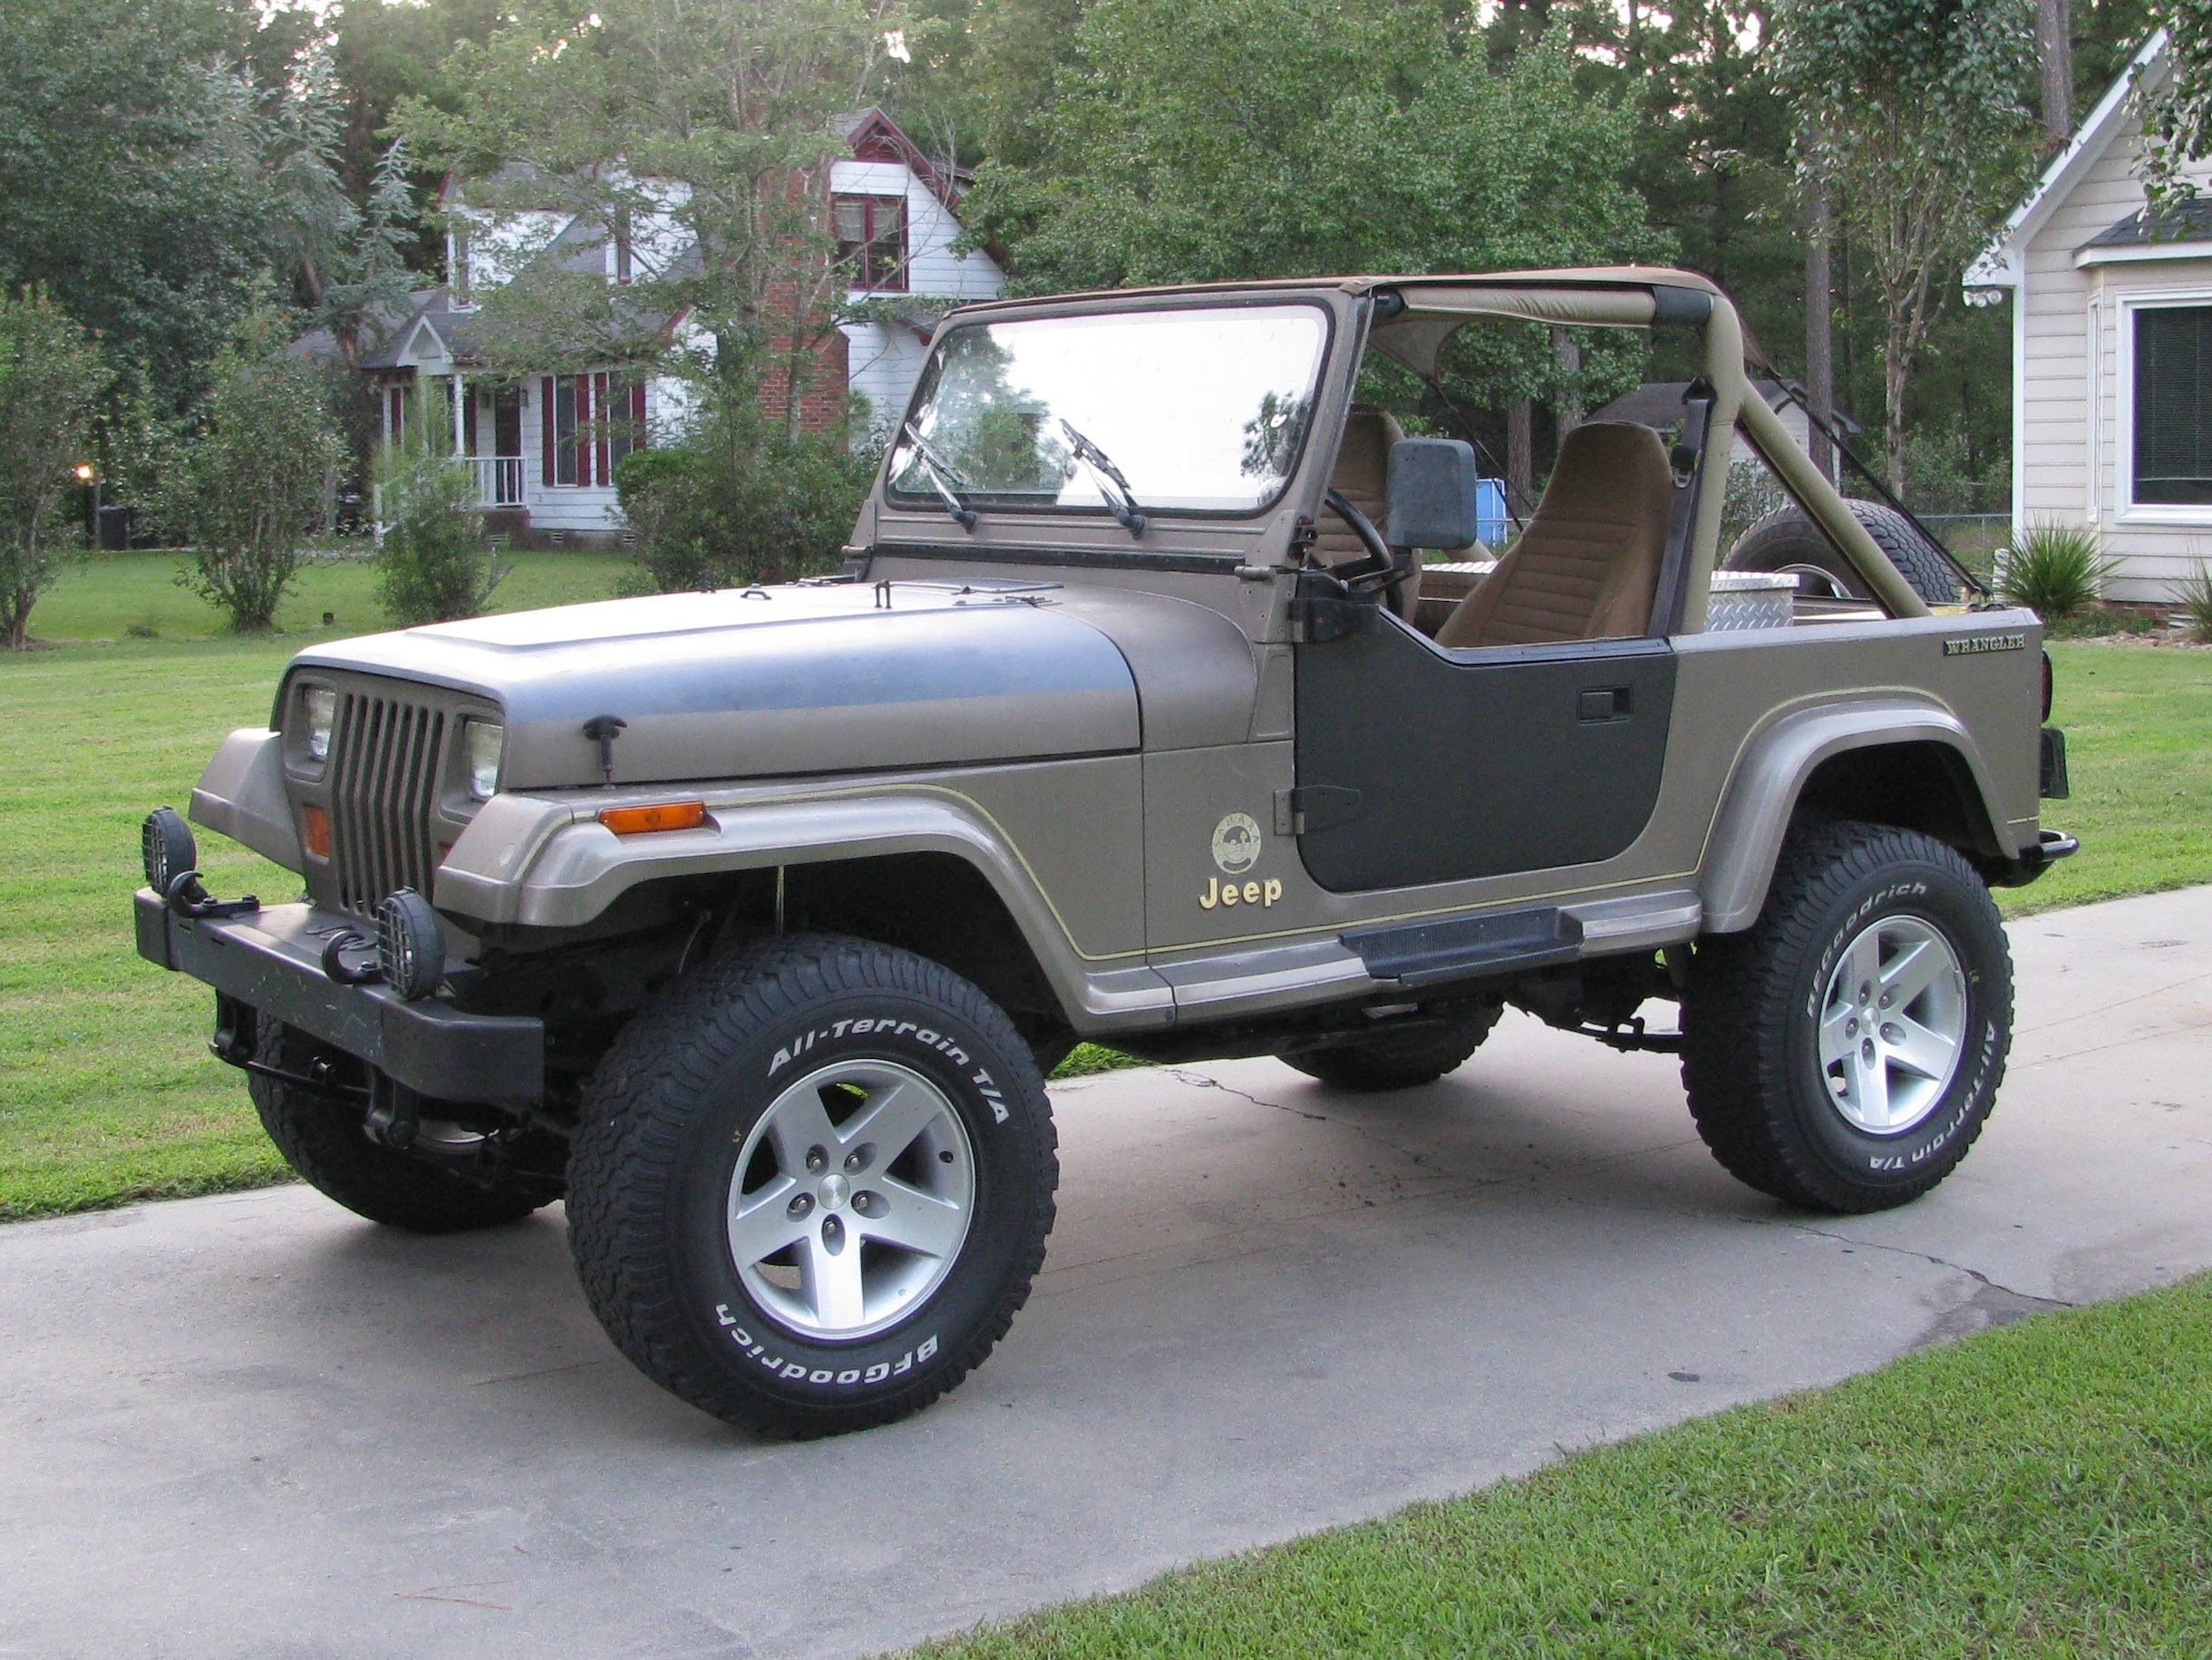 Jeep Yj Rubicon Express 2 5 Standard Suspension Installation Part 2 Re Jeep Coches Y Motocicletas Coches